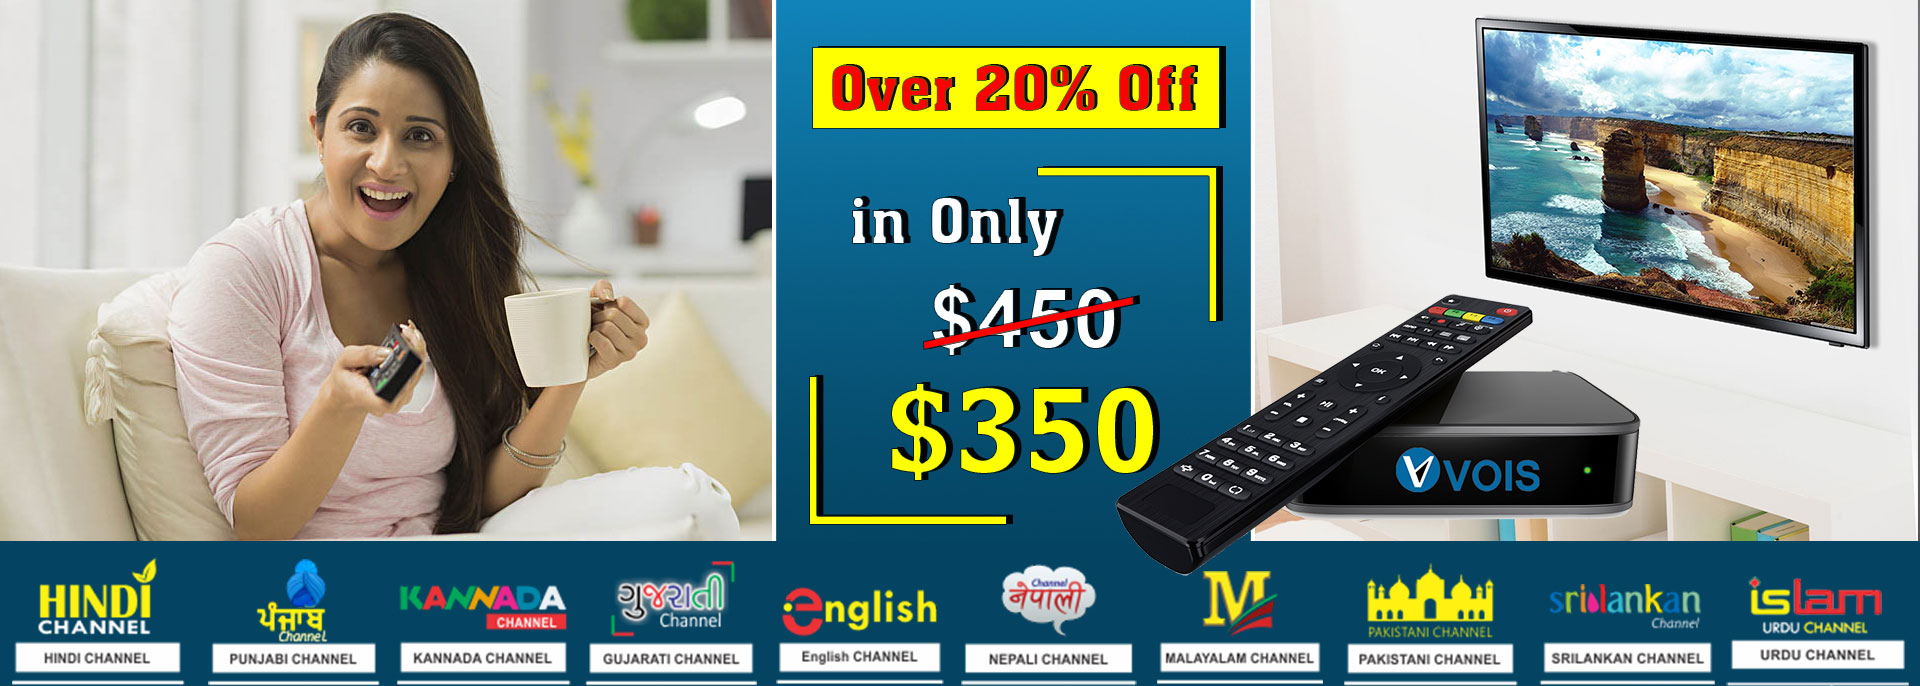 Indian iptv box now at $350